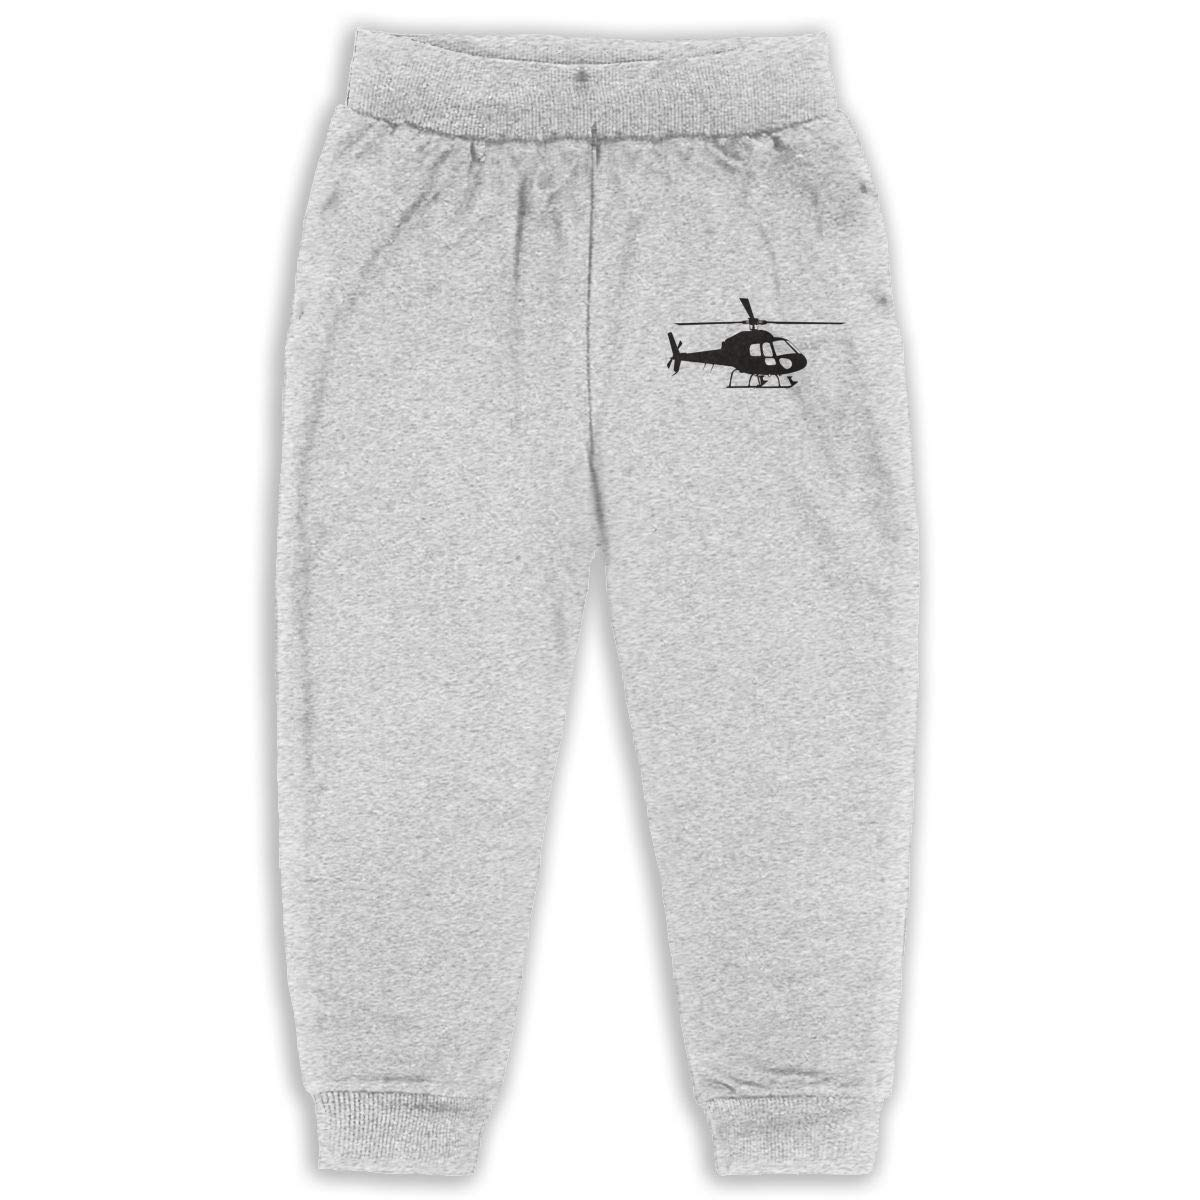 AaAarr Toddlers Helicopter Drawstring Sweatpants for Boys and Girls